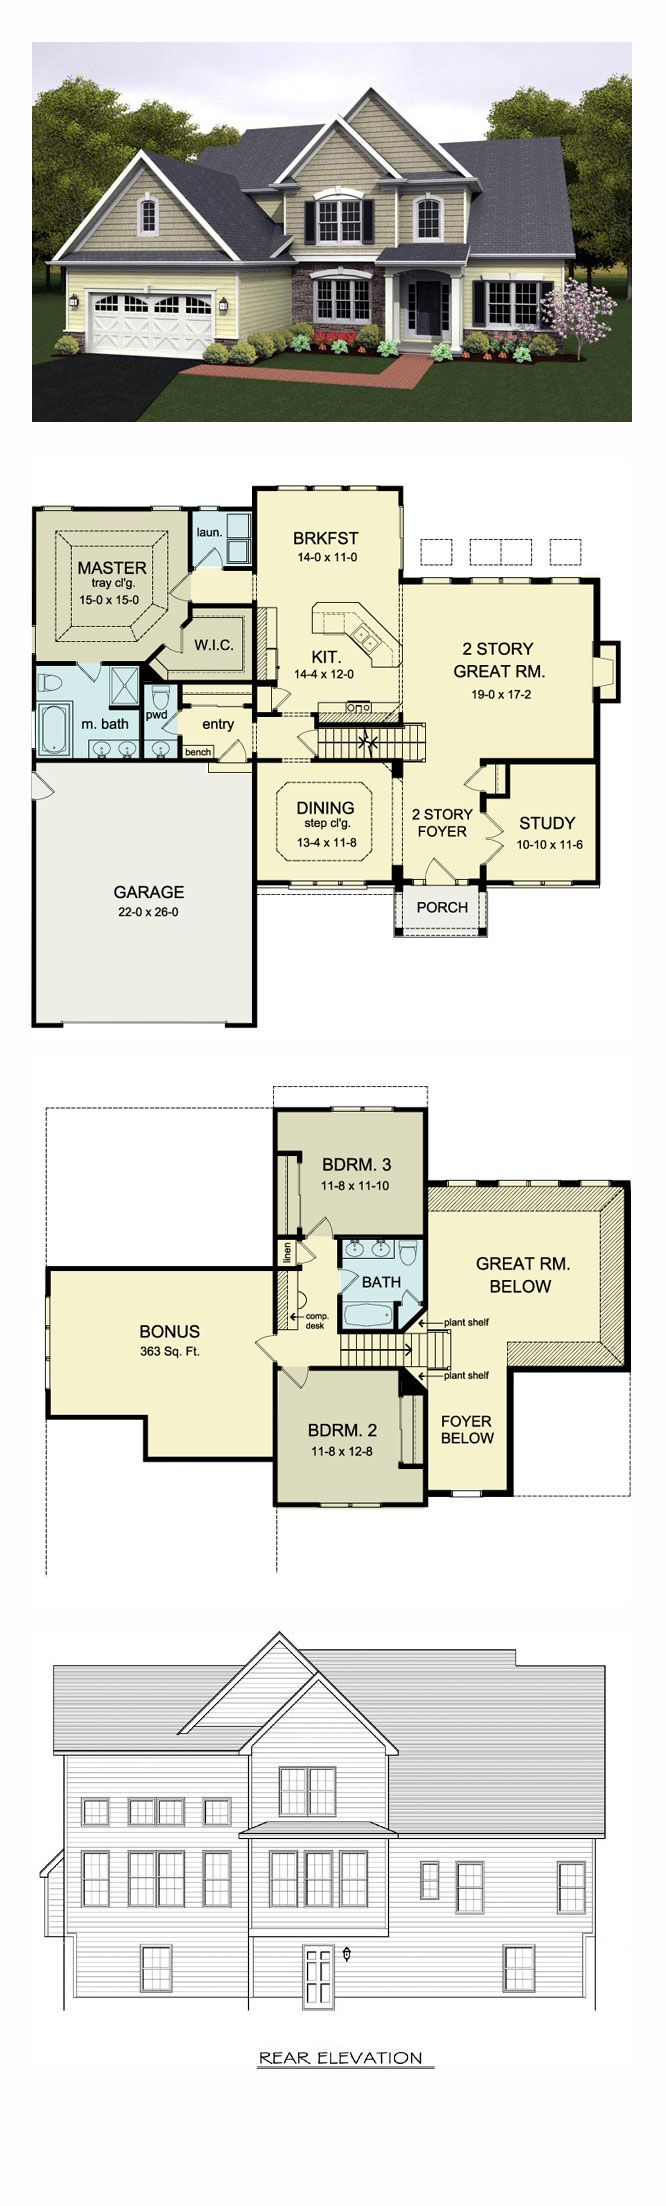 House Blueprints on 2 car garage design ideas